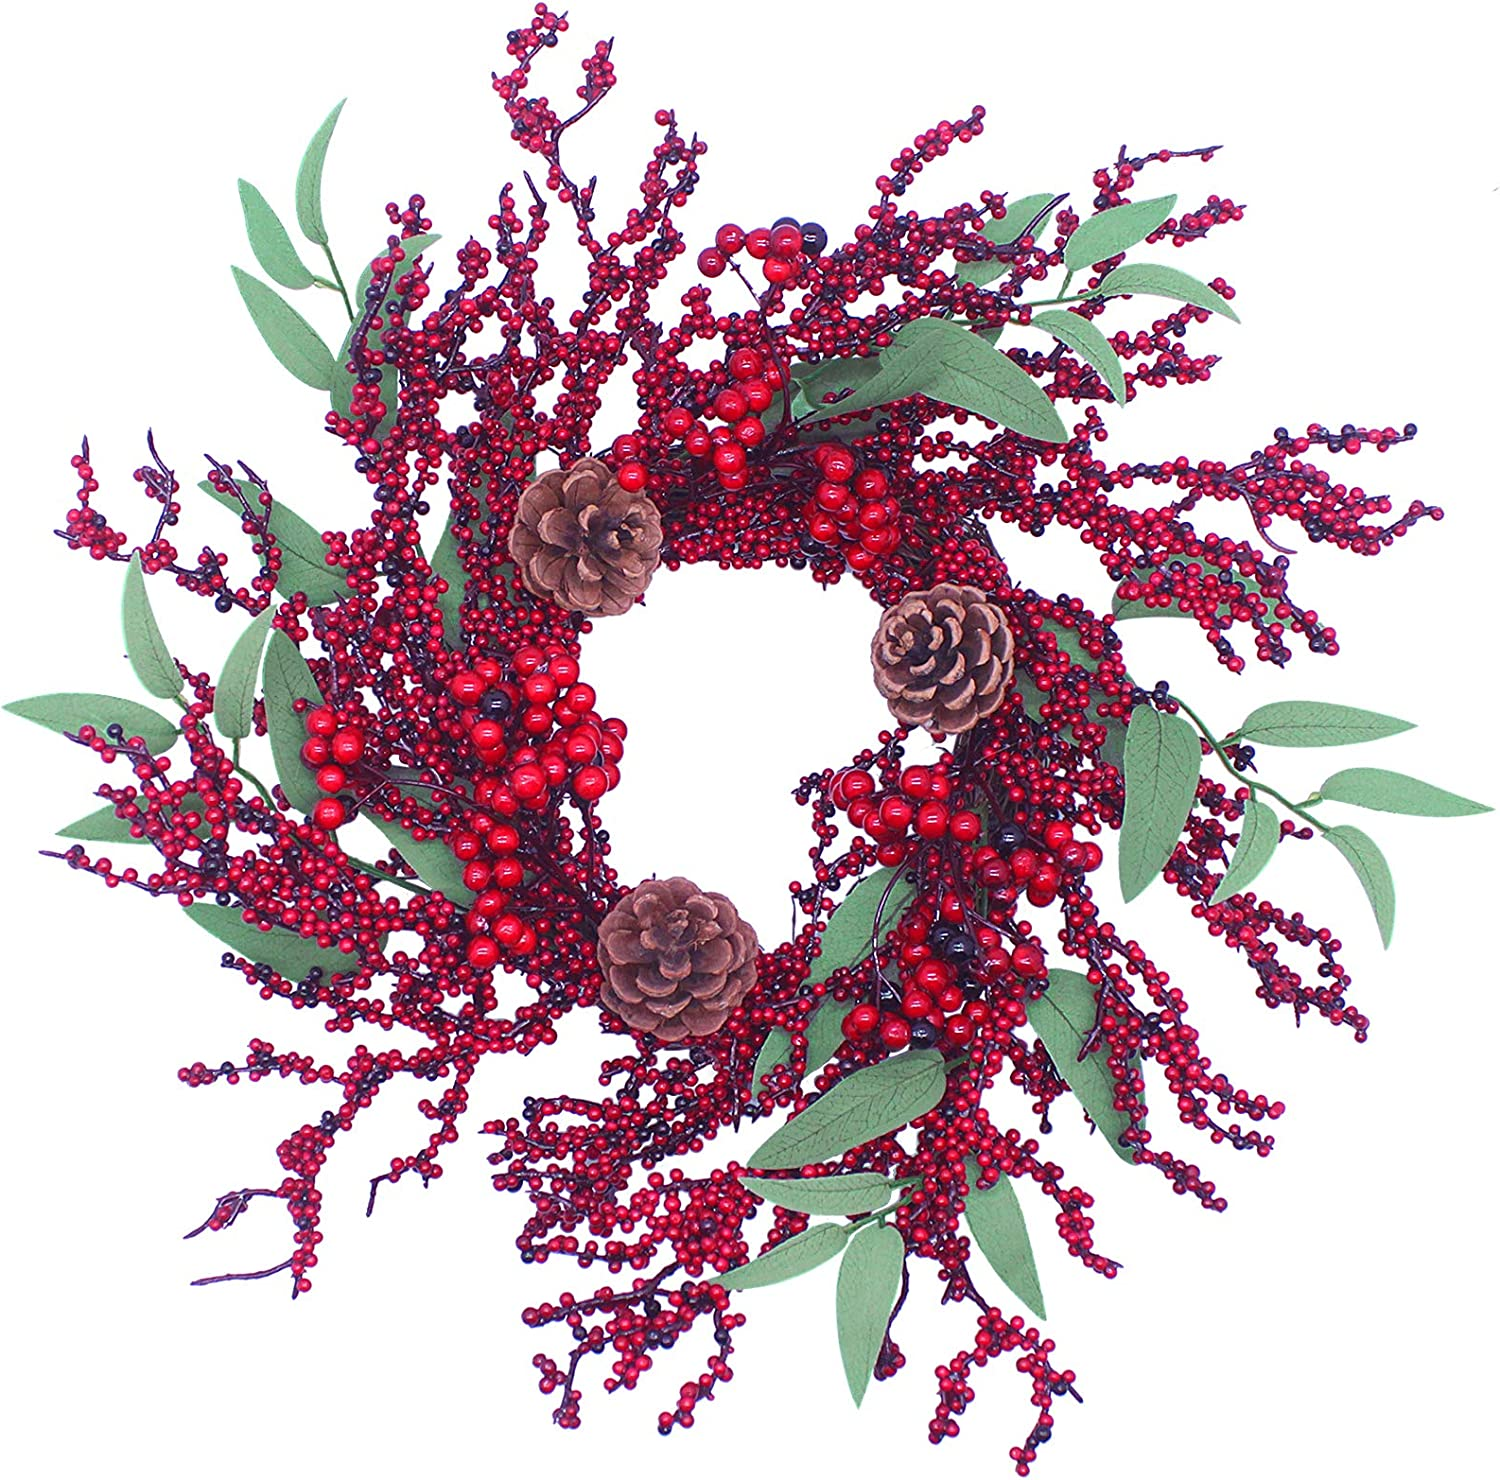 "Aimanni 16"" Christmas Wreath, Red Berry & Pinecones Artificial Wreath, Handmade Floral Front Door Wreath for Holiday Festival Home Farmhouse Wall Decor"